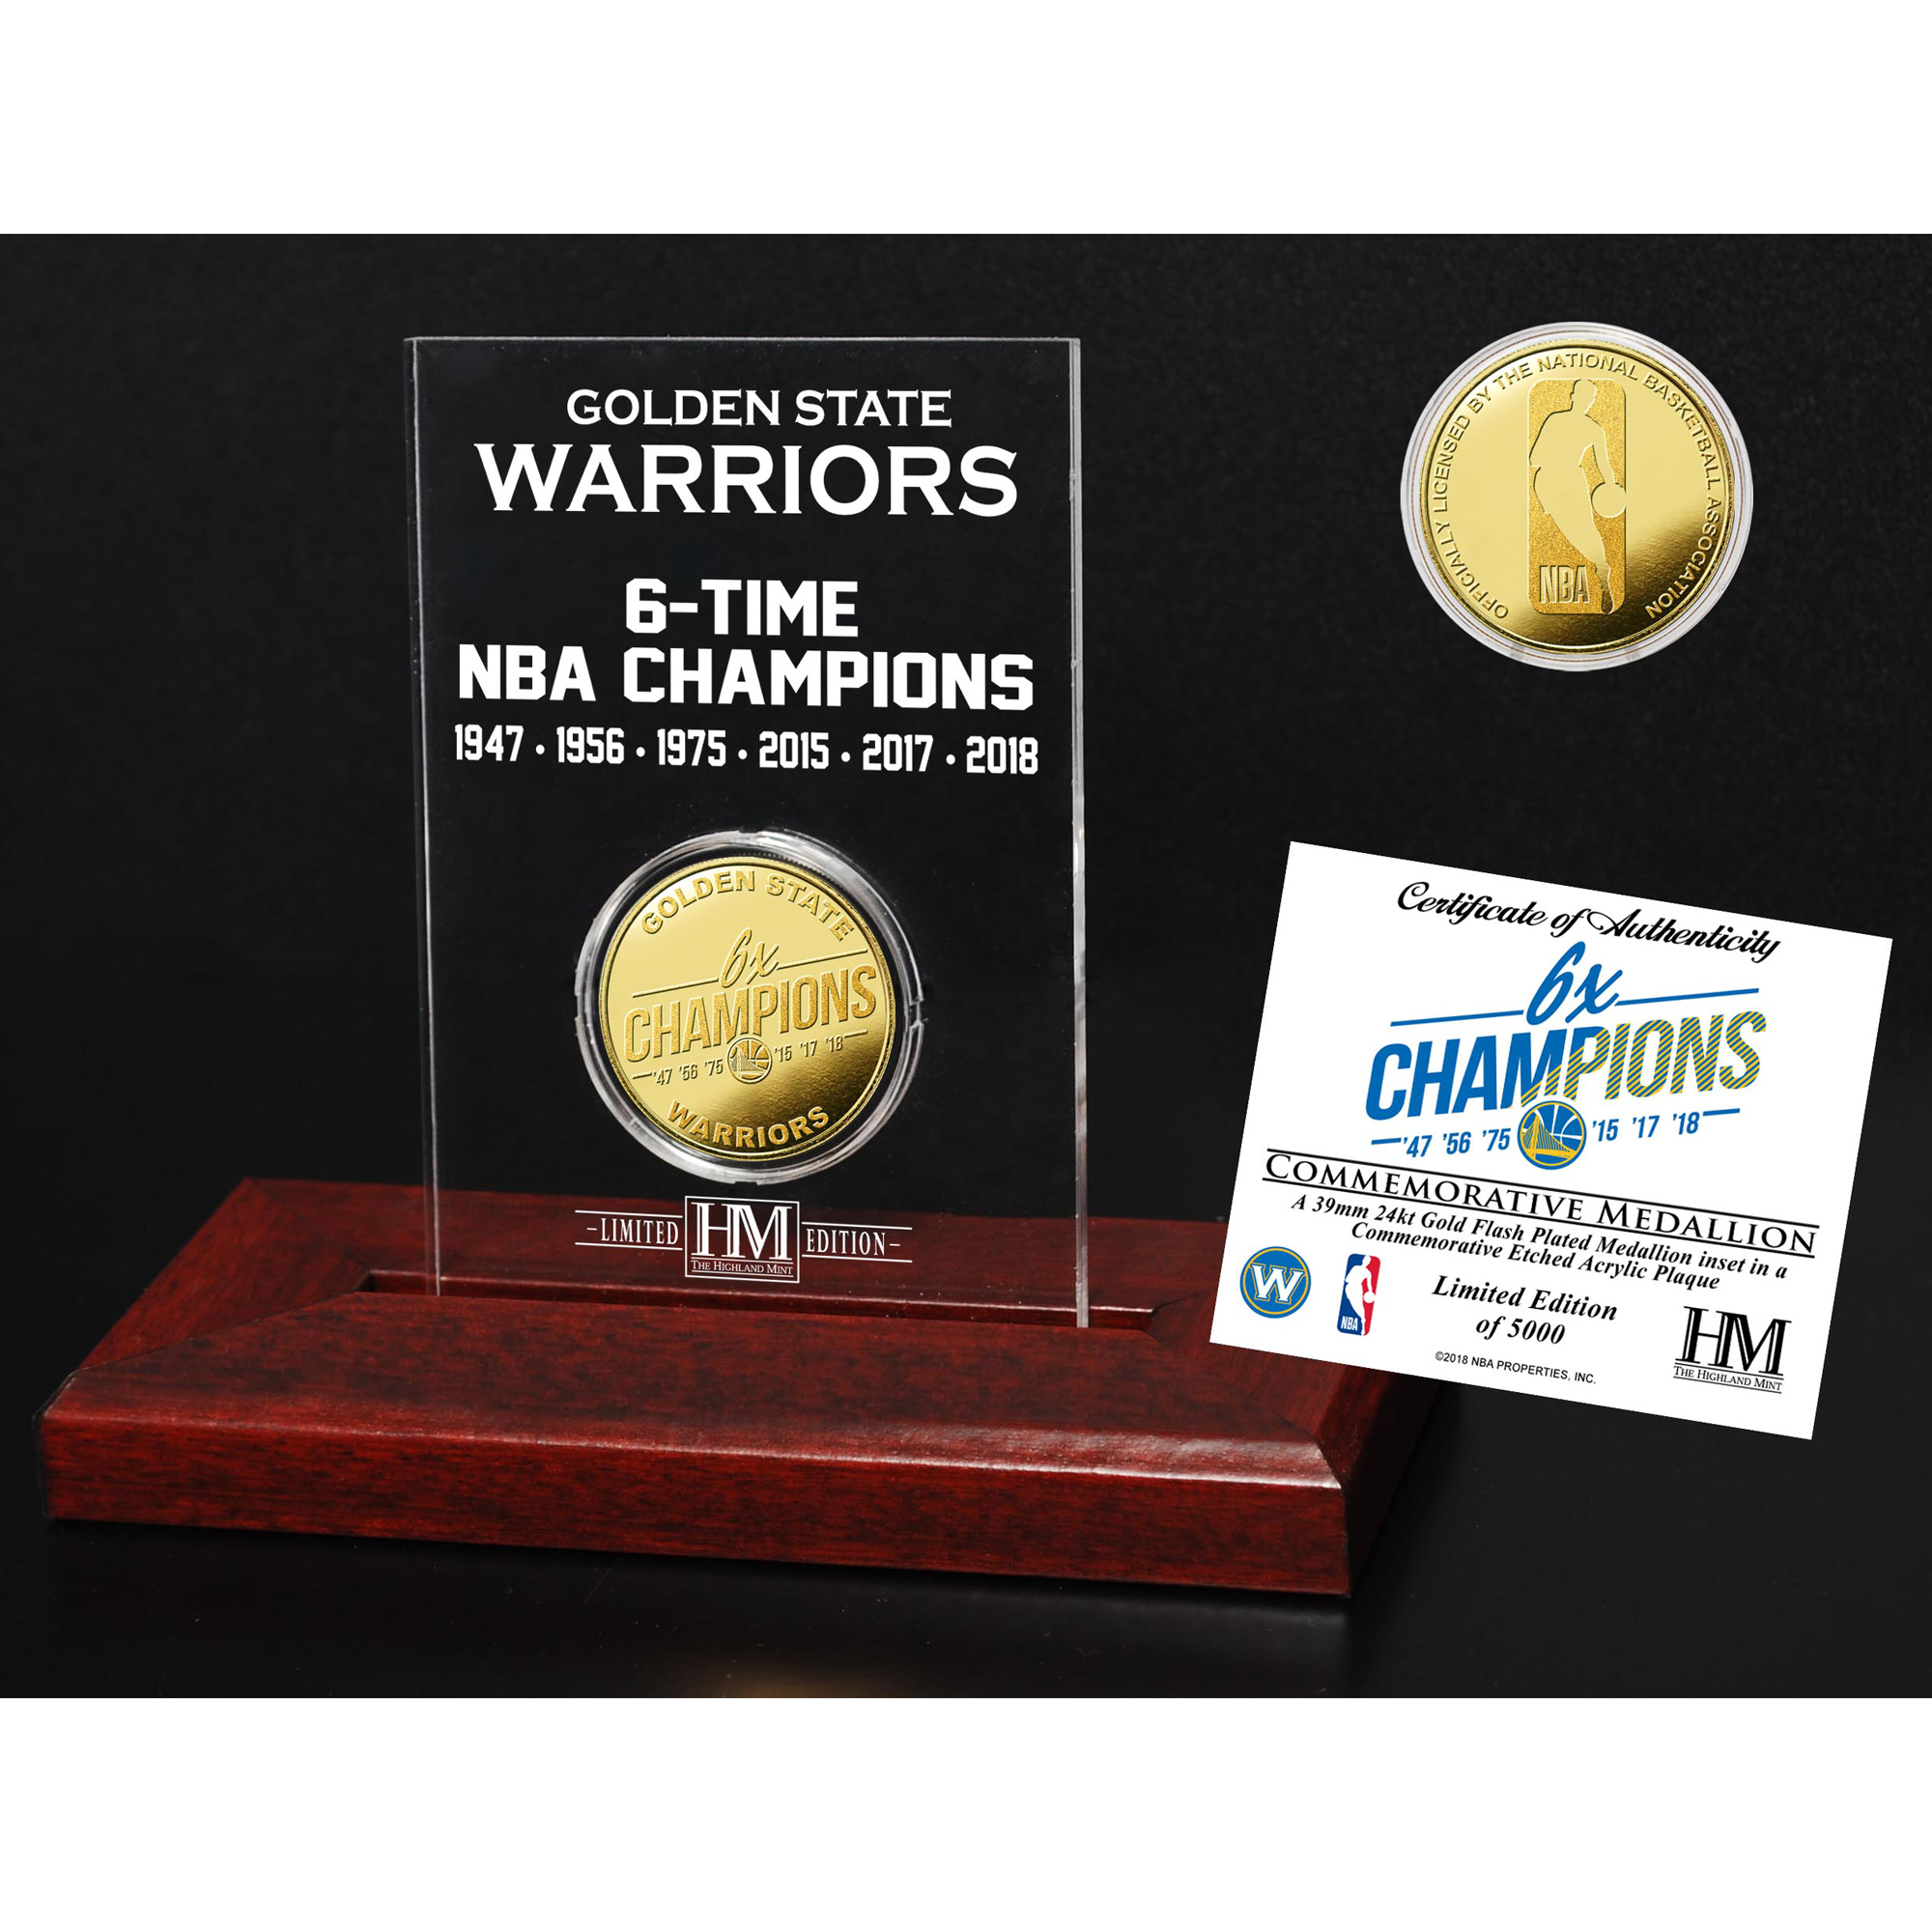 Golden State Warriors Highland Mint 2018 NBA Finals Champions Multi-Champs Gold Coin Etched Acrylic - No Size